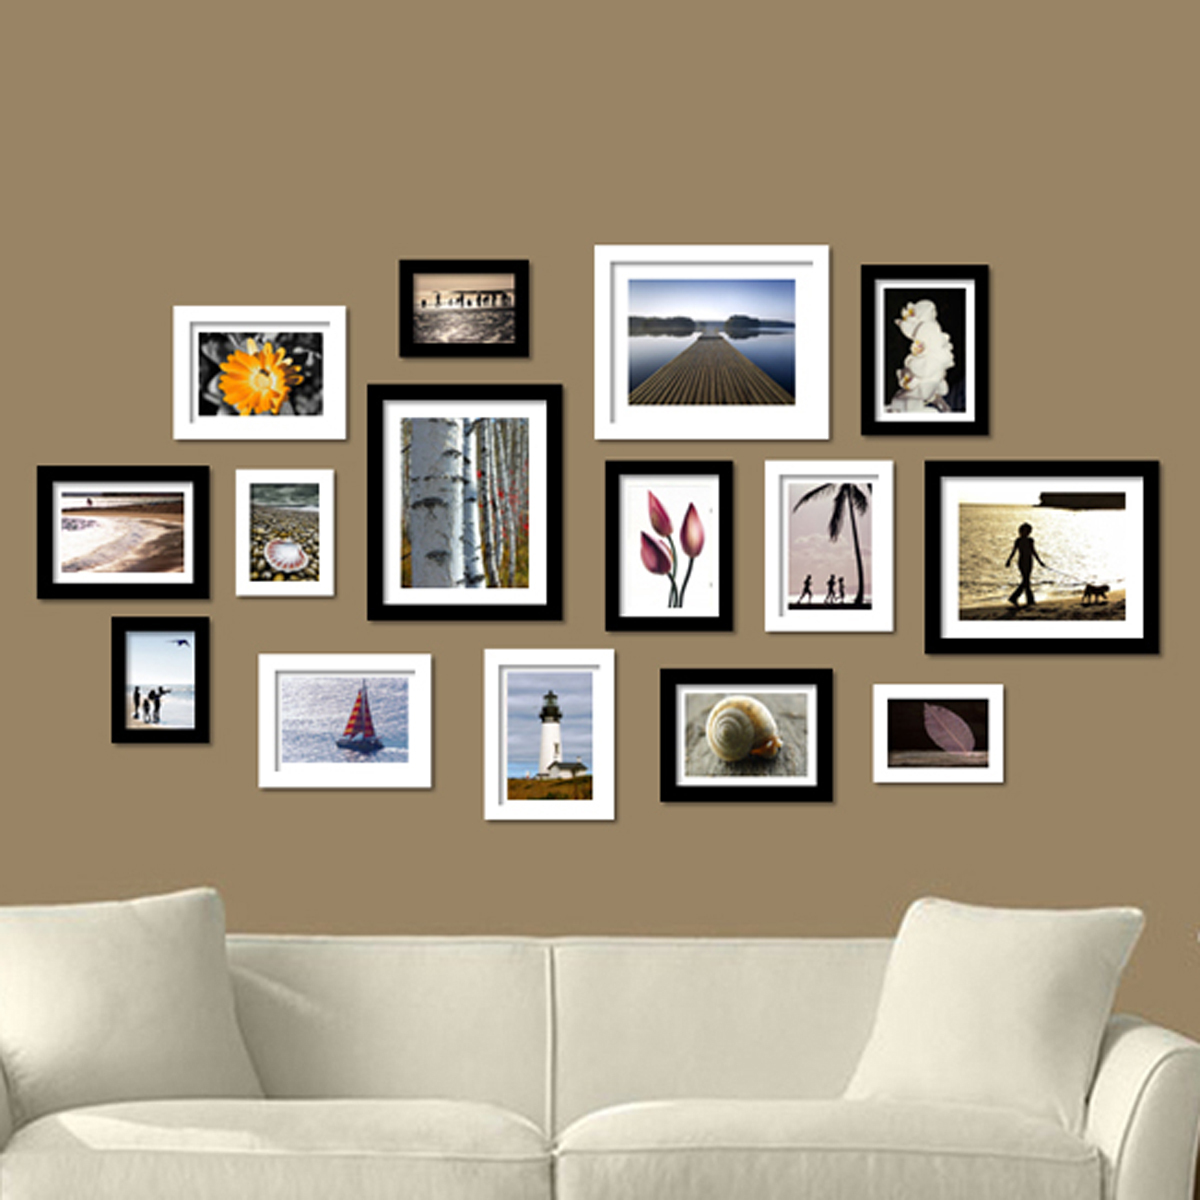 Comment Faire Un Mur De Photo faire un mur de photos decoration - maison design - apsip